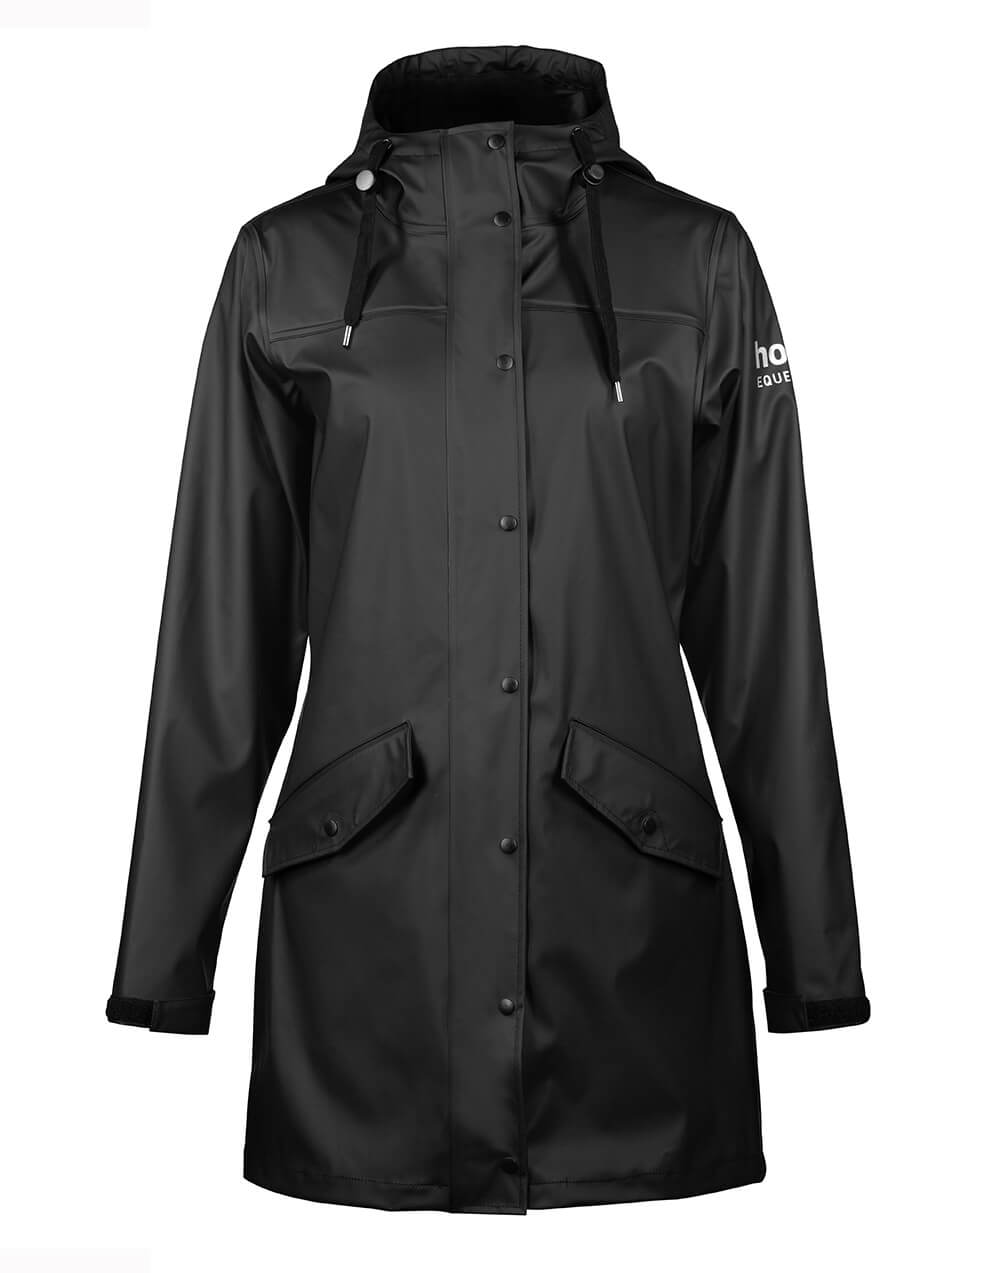 High quality PU rain jacket with hoodie, big pockets and clip buttons in black